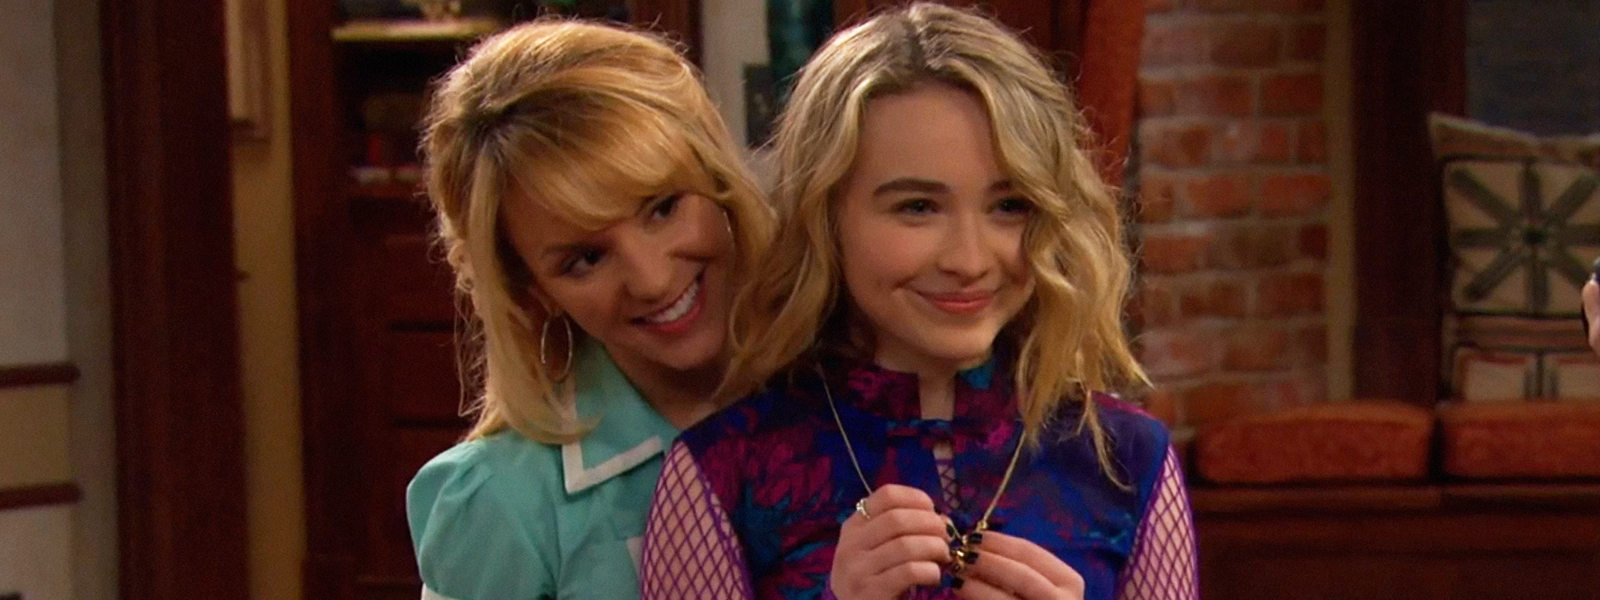 girl meets world fanfiction maya sick Because maya is her best friend in the whole entire world, and she whining to riley between class about how the arches of her feet hurt.